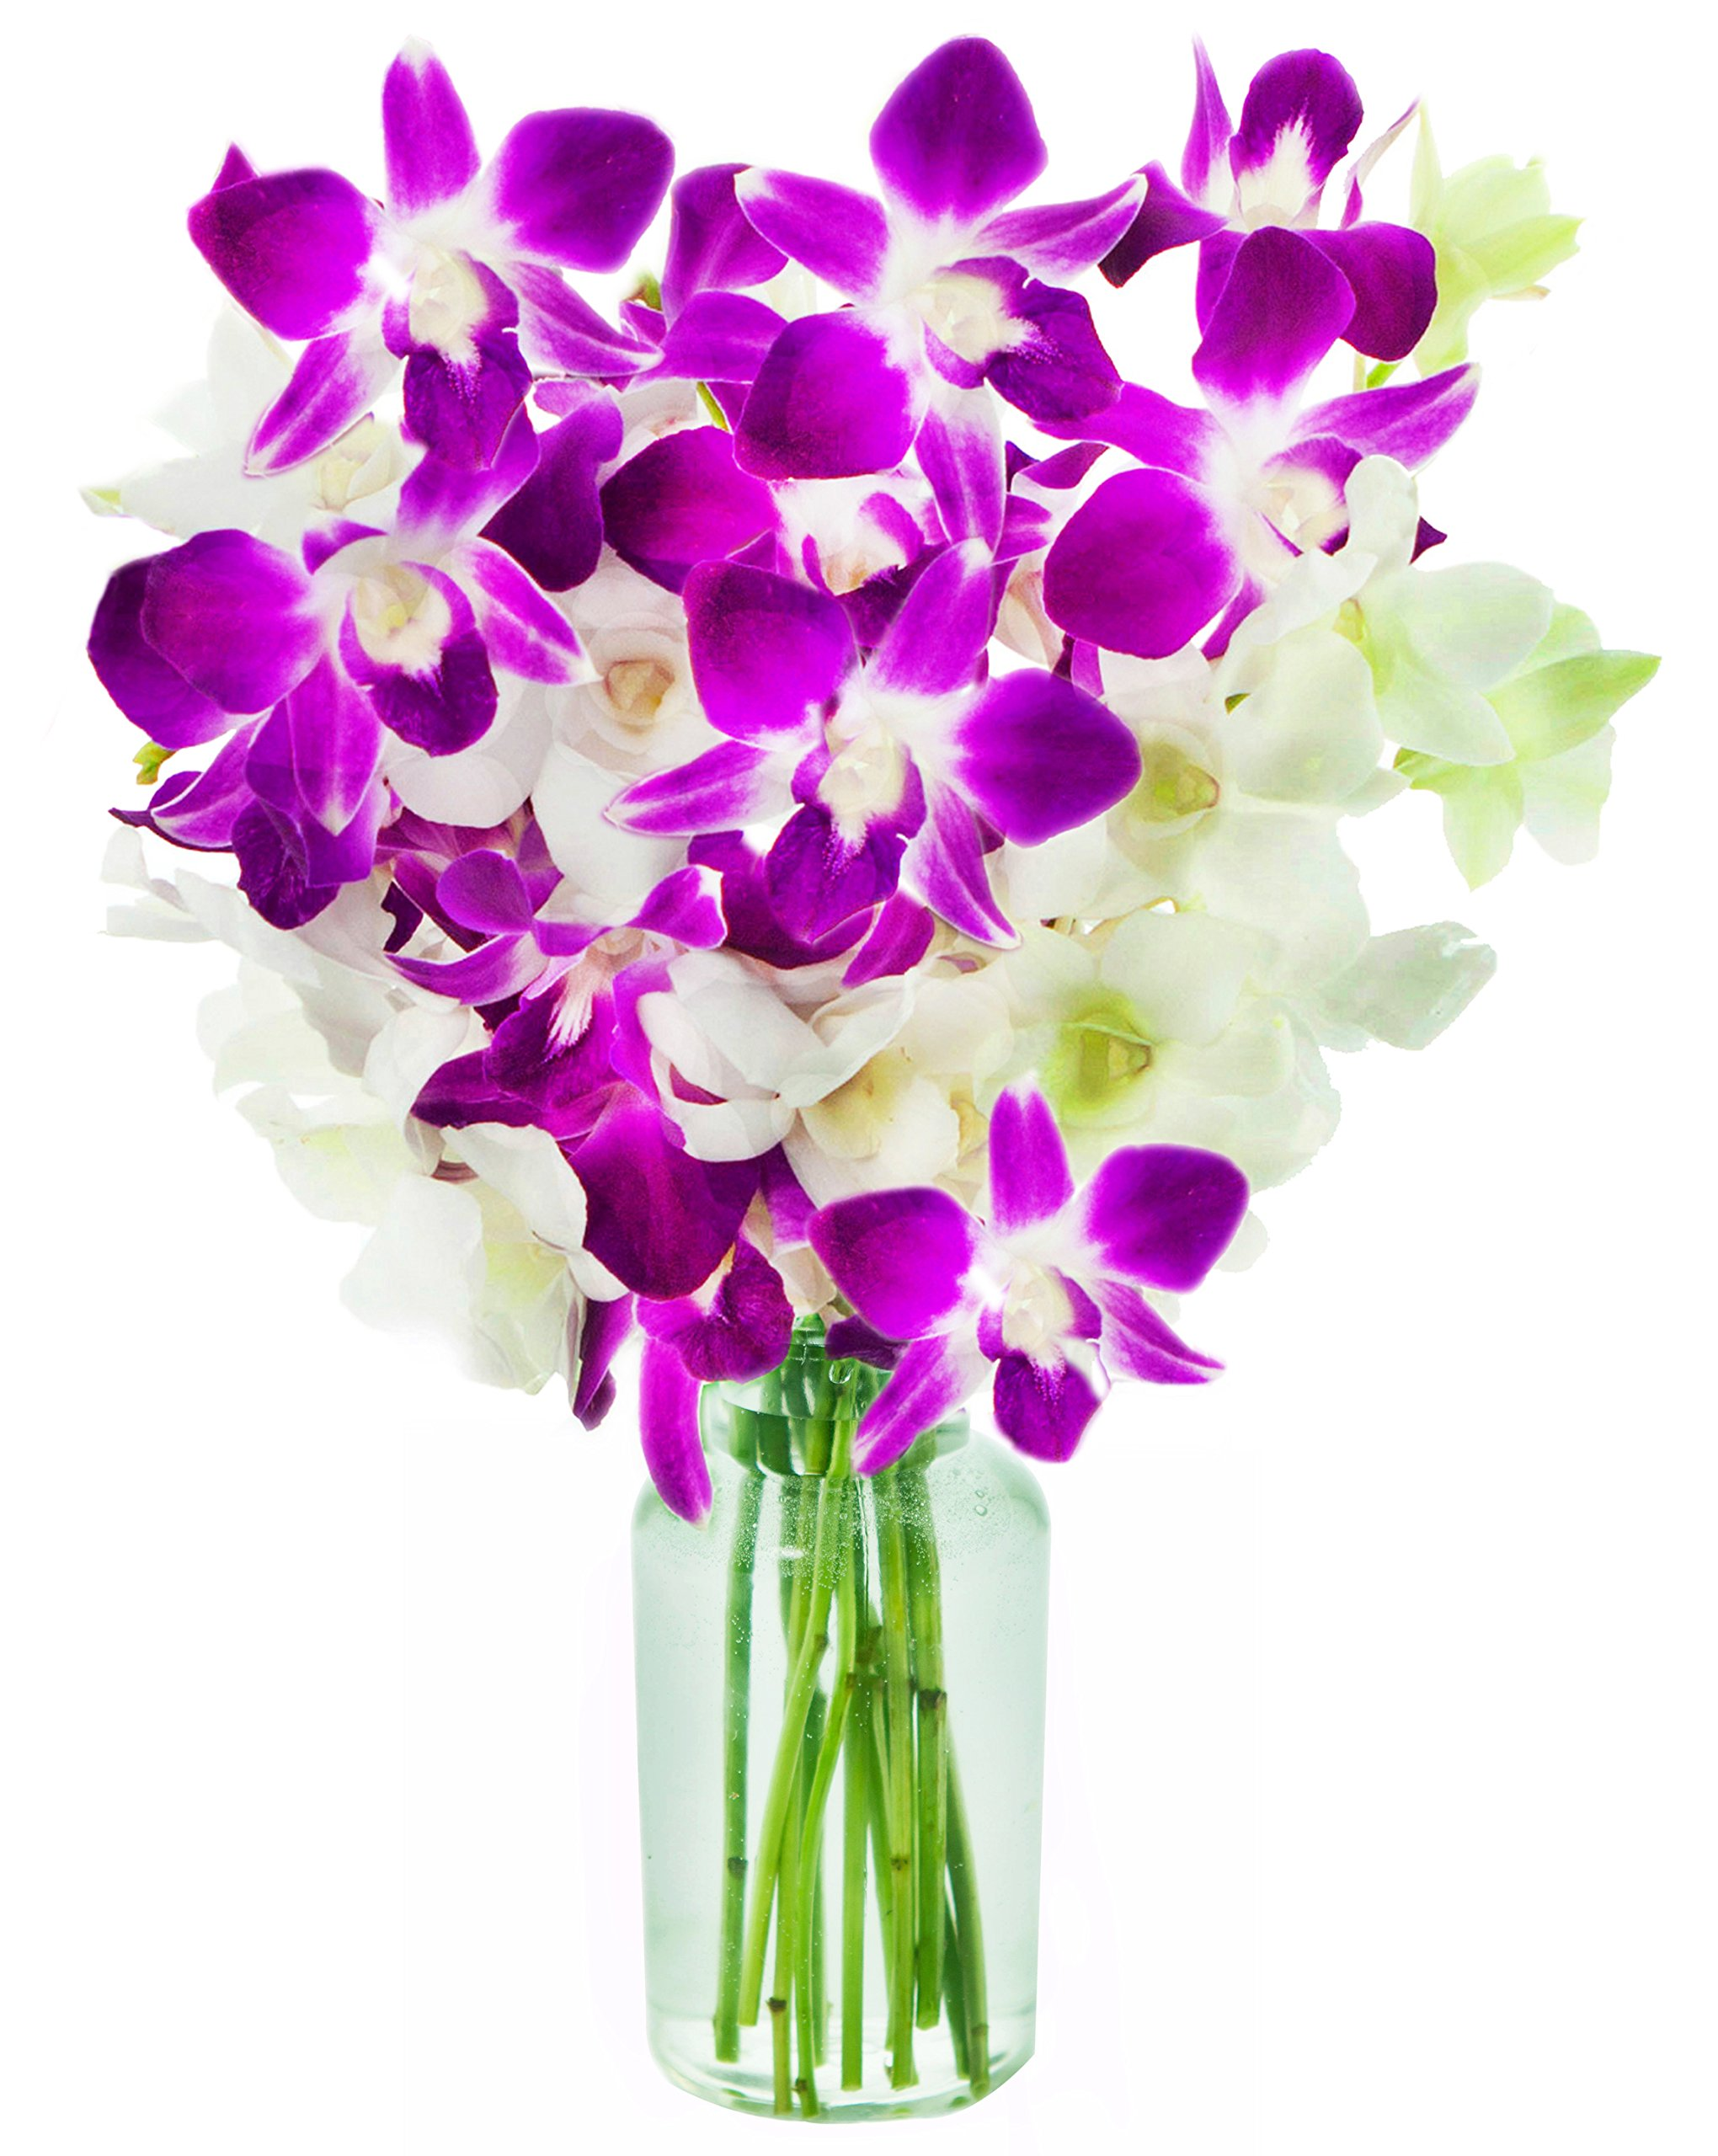 KaBloom Exotic Opal Orchid  Bouquet of Purple and White Orchids from Thailand with Vase